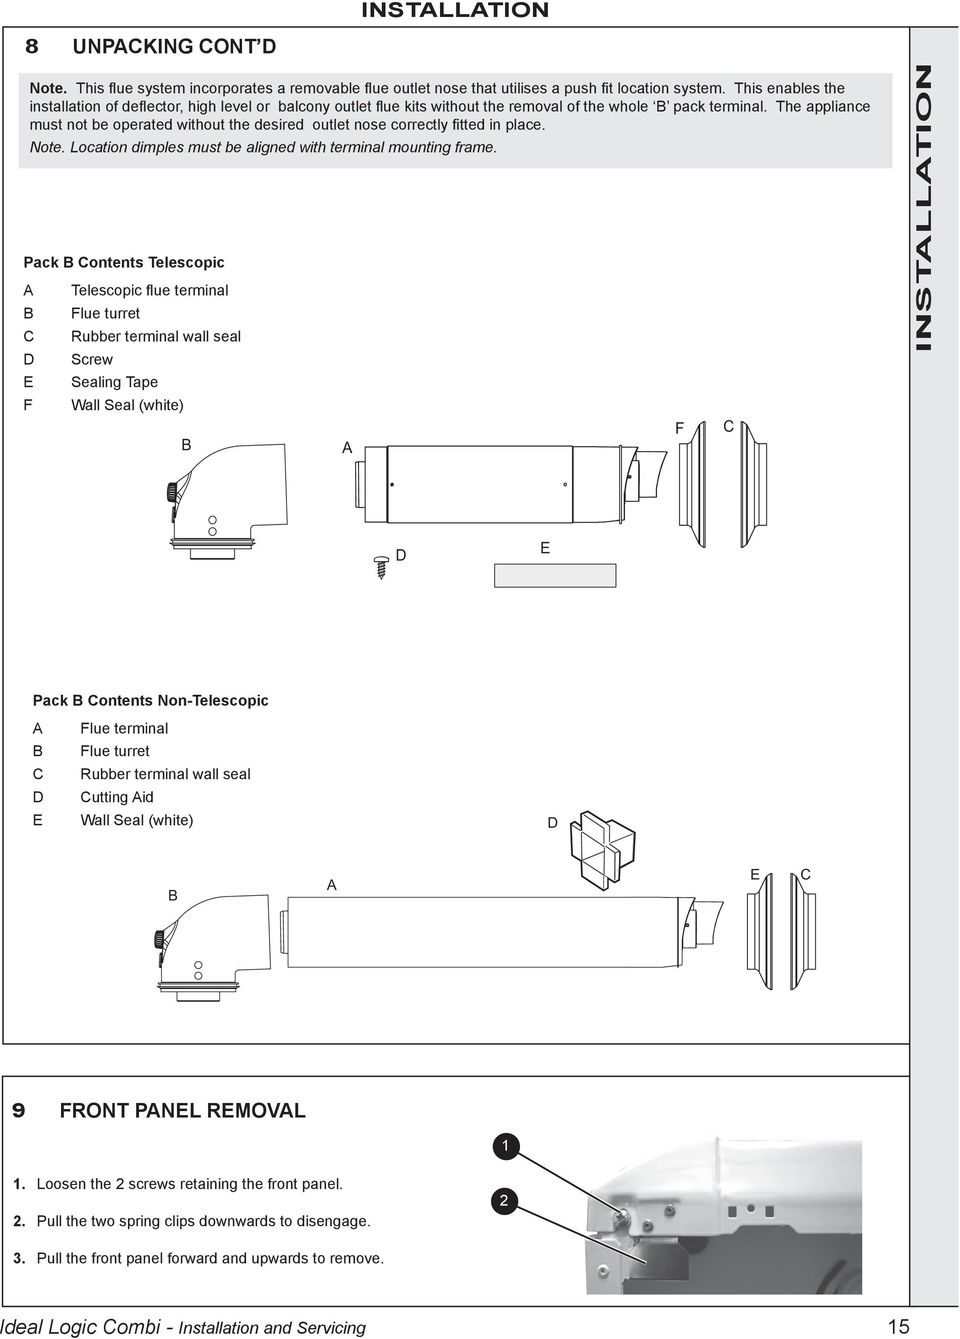 Installation And Servicing Pdf Quantec Wiring Instructions The Appliance Must Not Be Operated Without Desired Outlet Nose Correctly Fitted In Place 16